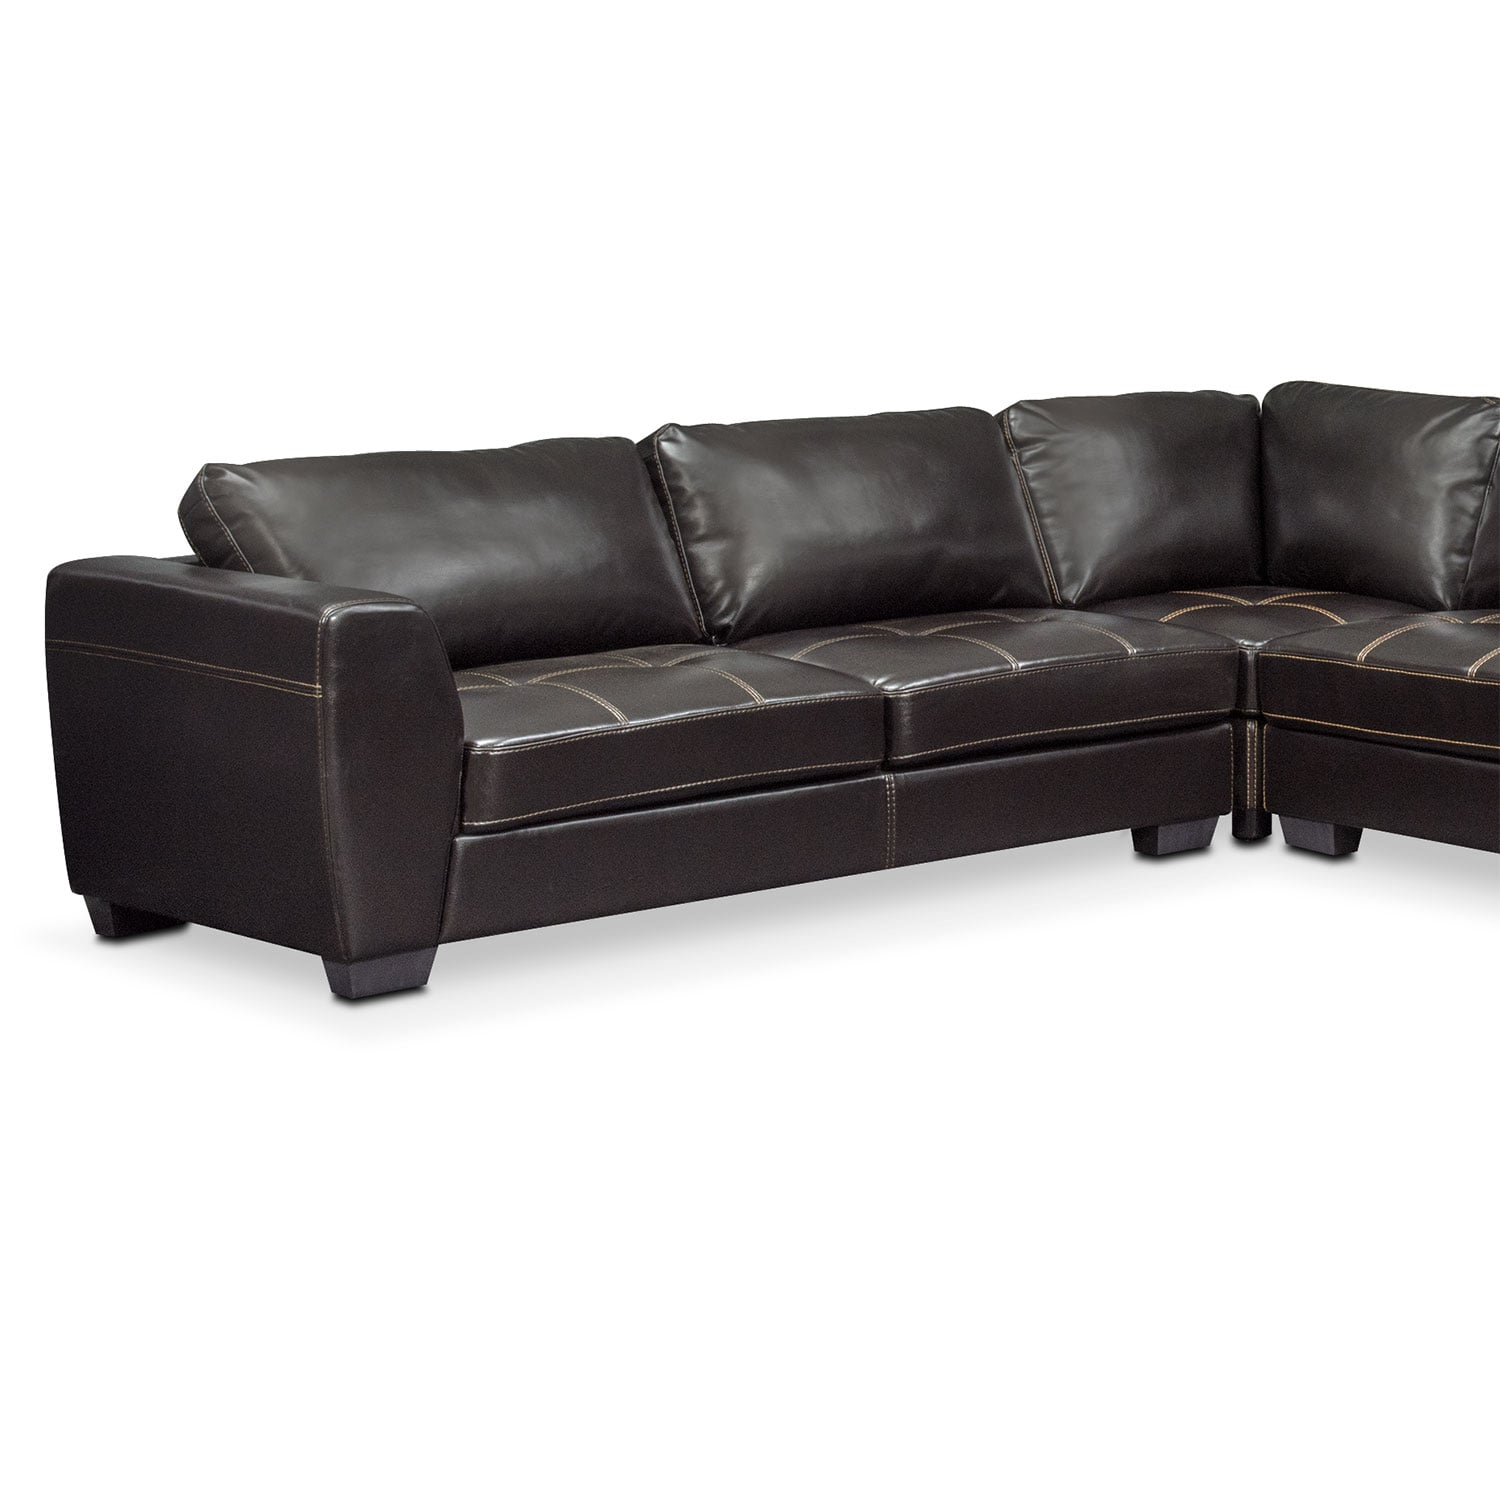 Santana 4 piece sectional with right facing chaise black for Black sectional with chaise